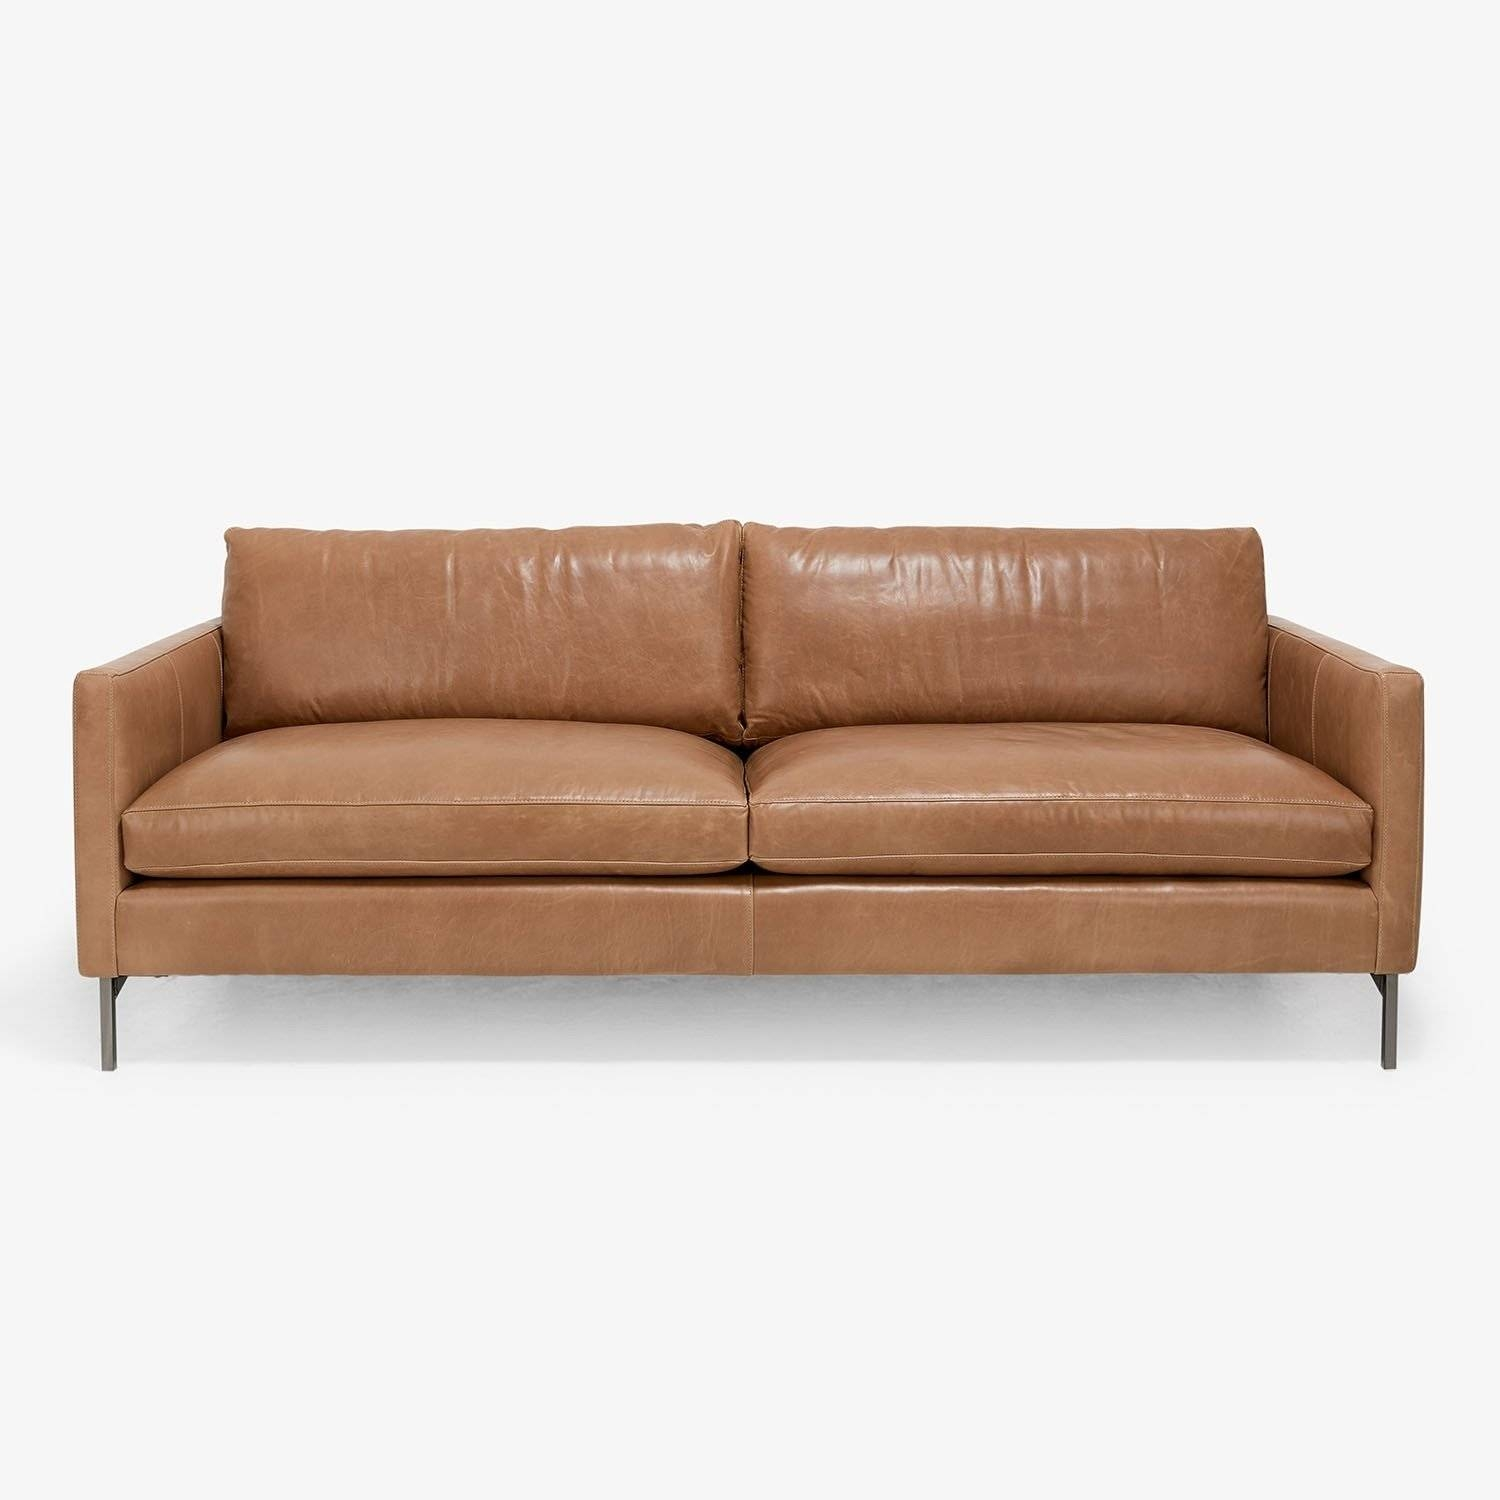 Sofas, Couches, And Loveseats For Your Nyc Apartment At Abc Home Throughout Cobble Hill Sofas (View 15 of 15)